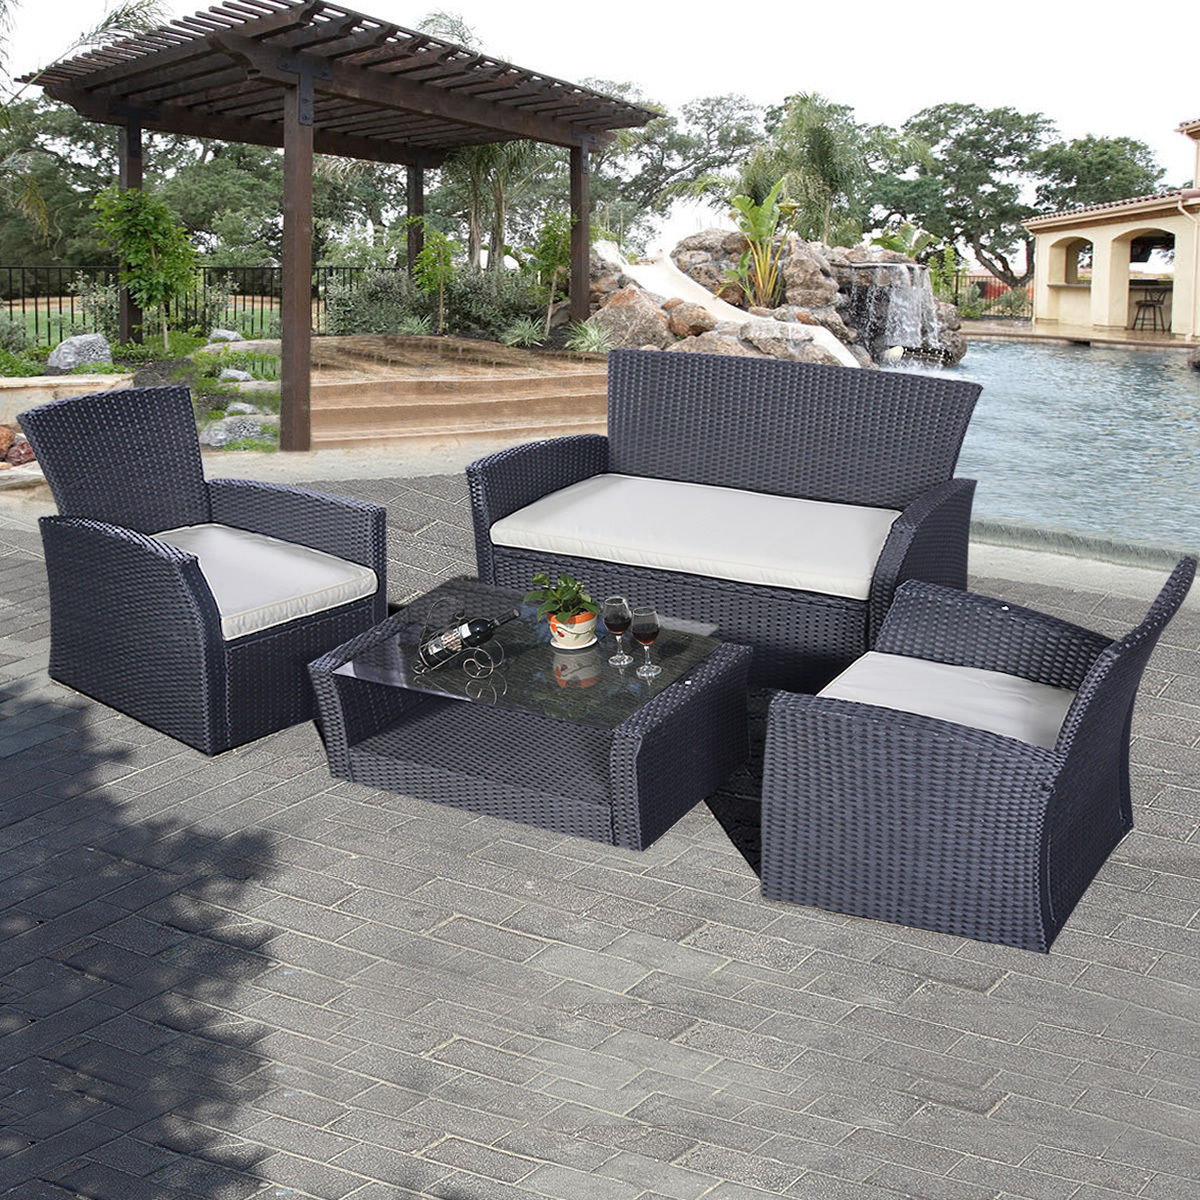 Giantex 4PCS Outdoor Patio Furniture Set Modern Wicker Garden Lawn Rattan Sofa Chairs Table Set HW50328+ circular arc sofa half round furniture healthy pe rattan garden furniture sofa set luxury garden outdoor furniture sofas hfa086